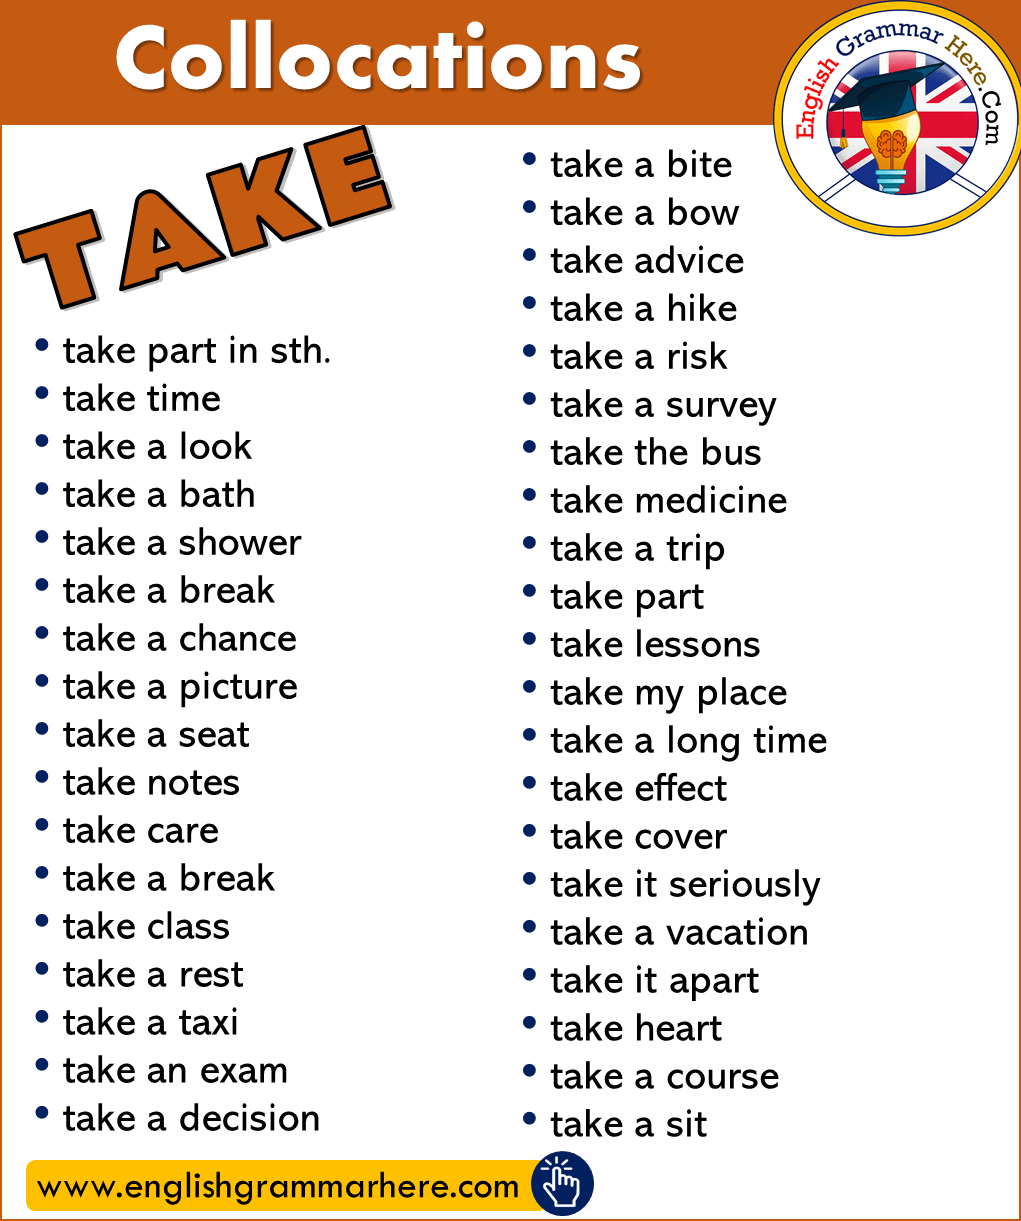 Collocations with TAKE in English